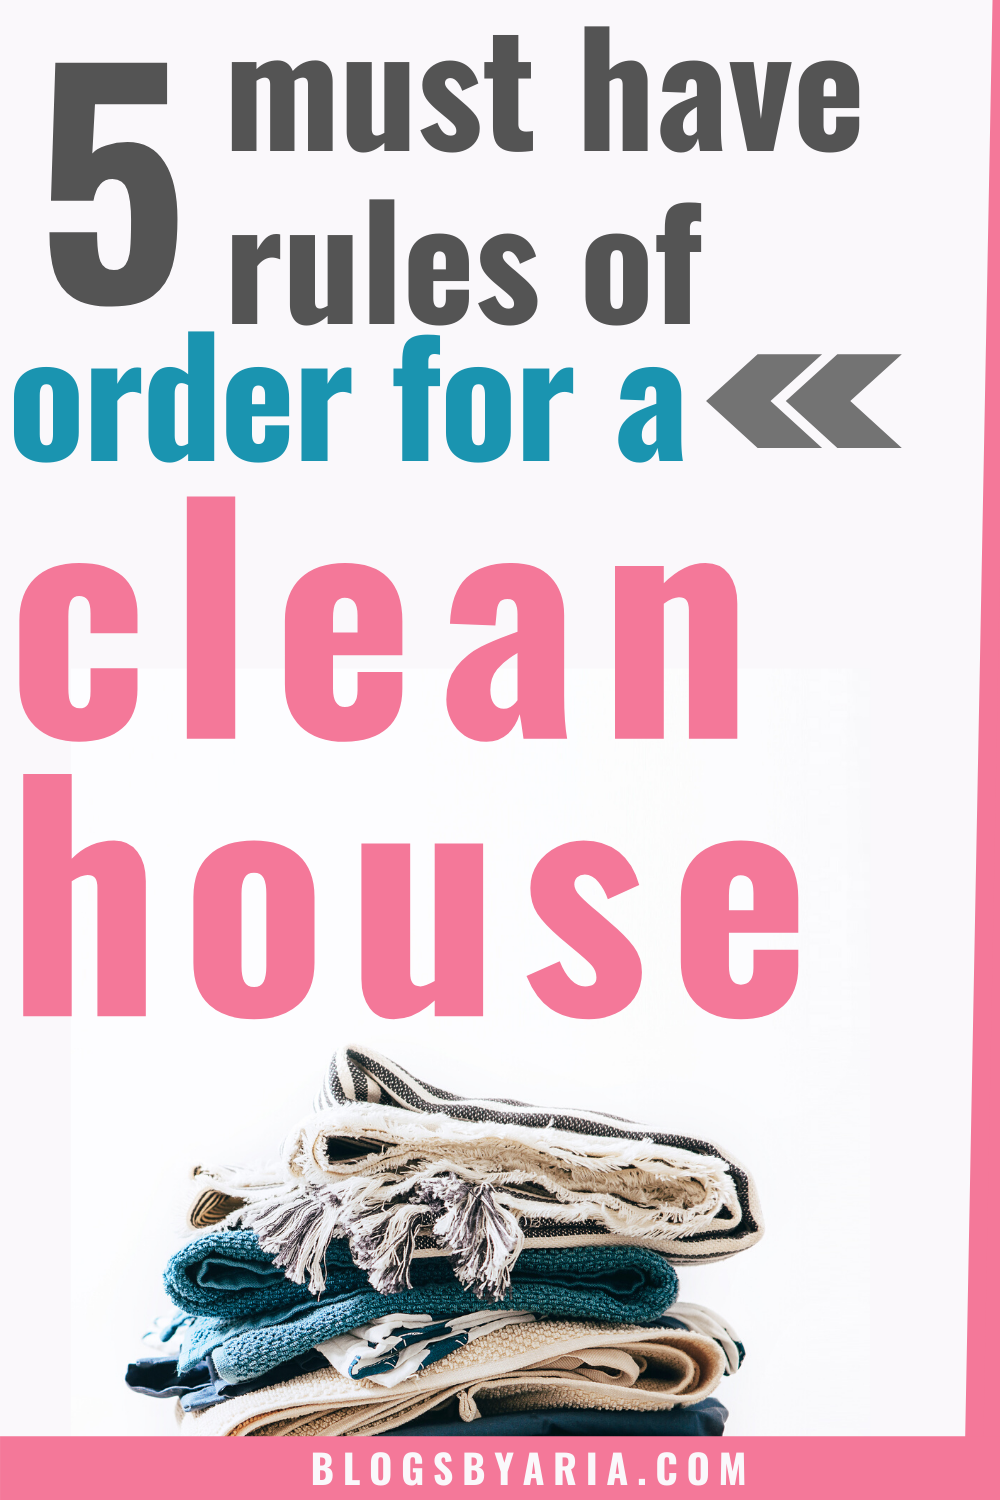 5 rules for a clean house